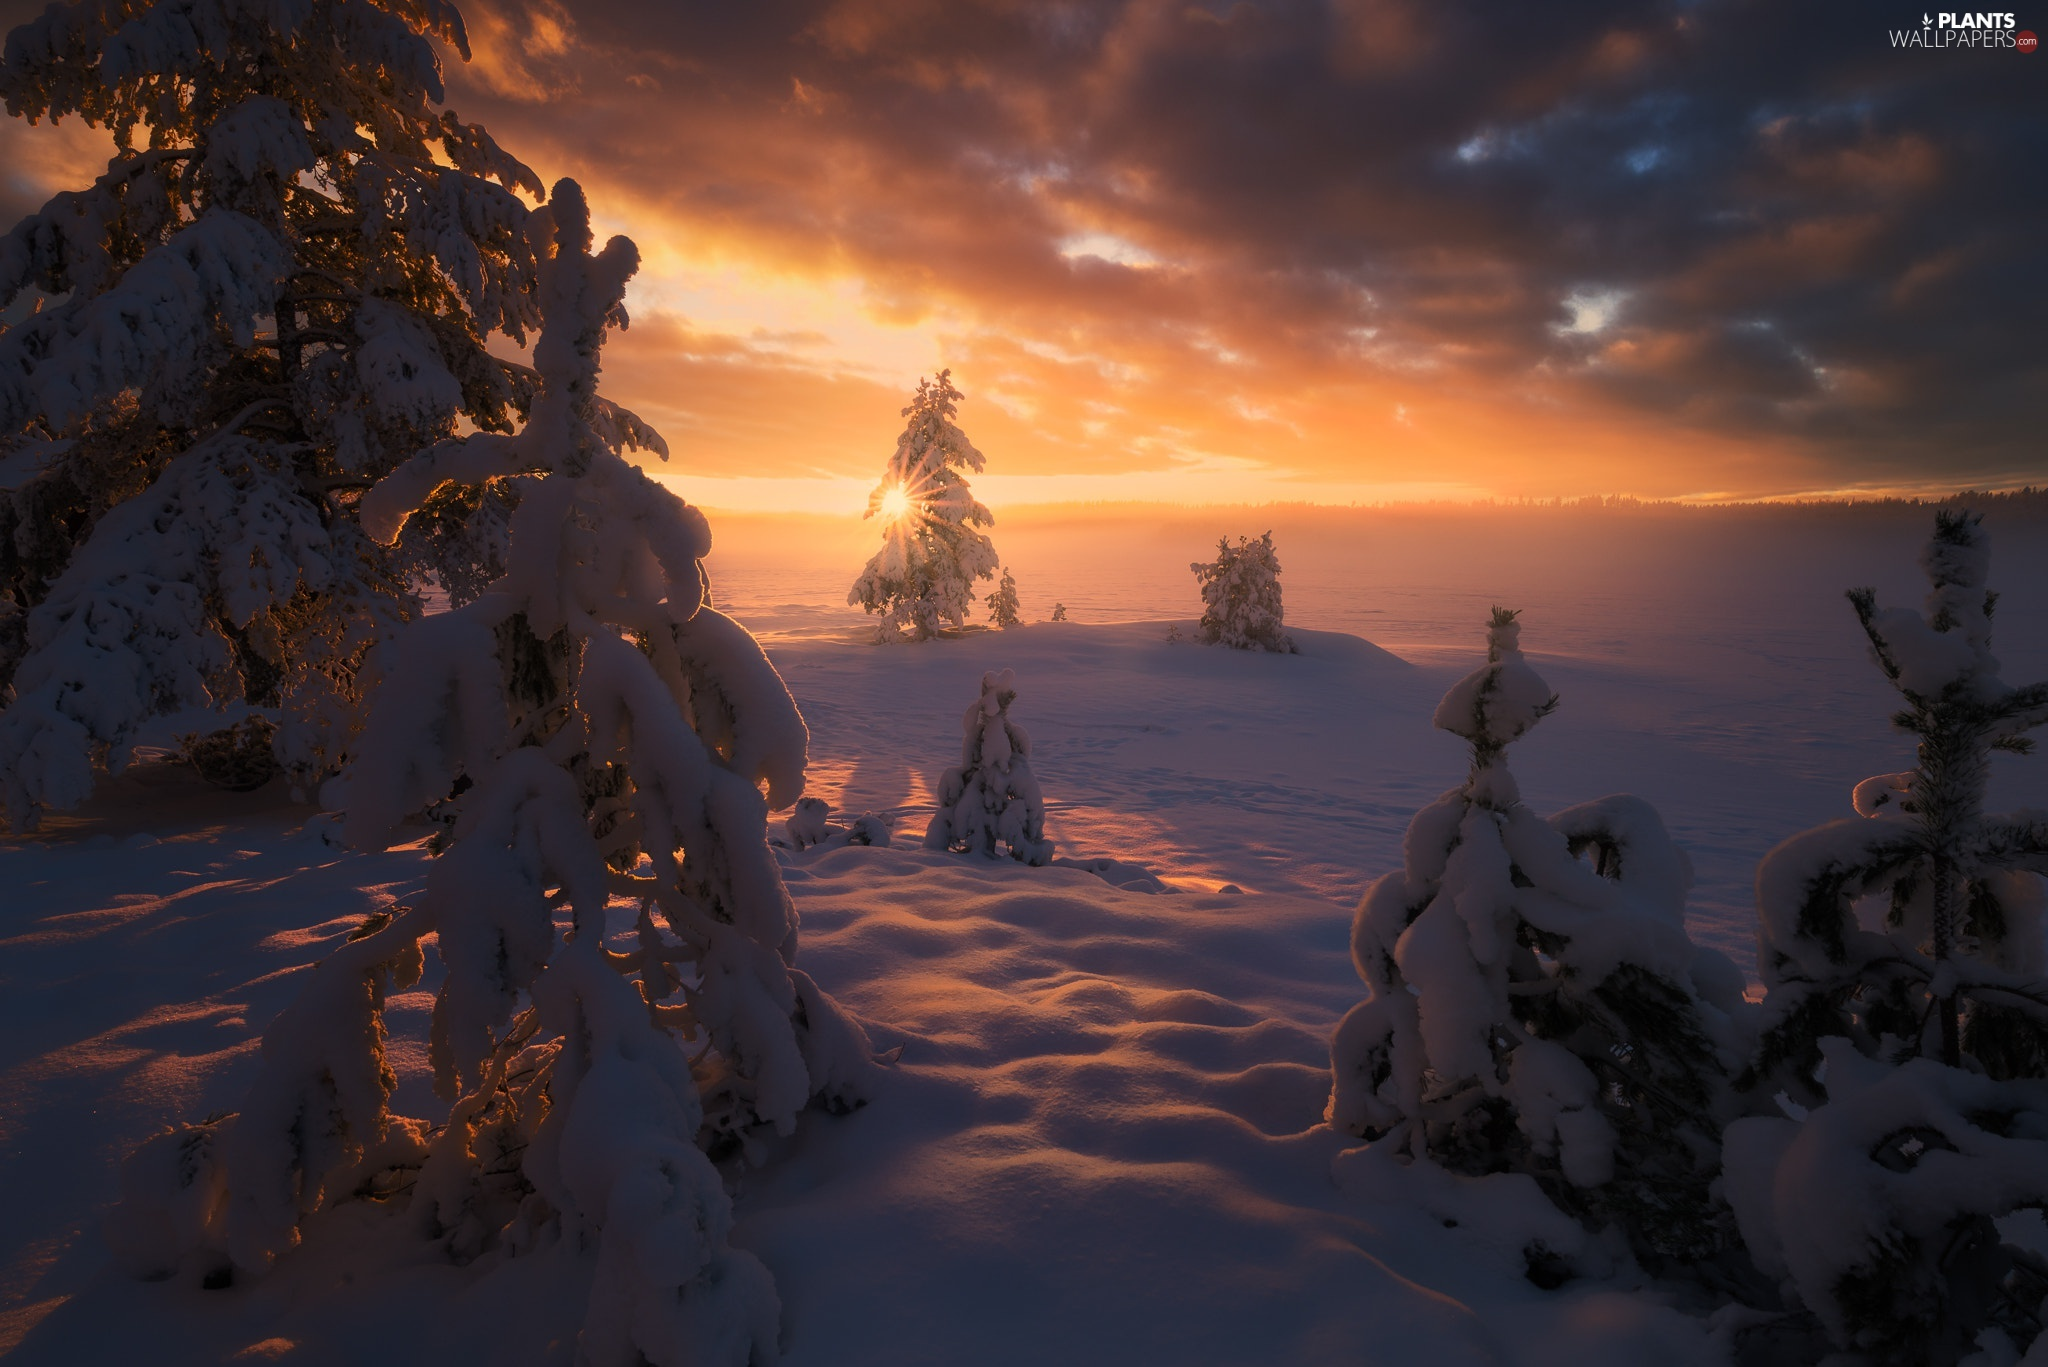 Great Sunsets, winter, viewes, snowy, trees, Ringerike Municipality, Norway, lake